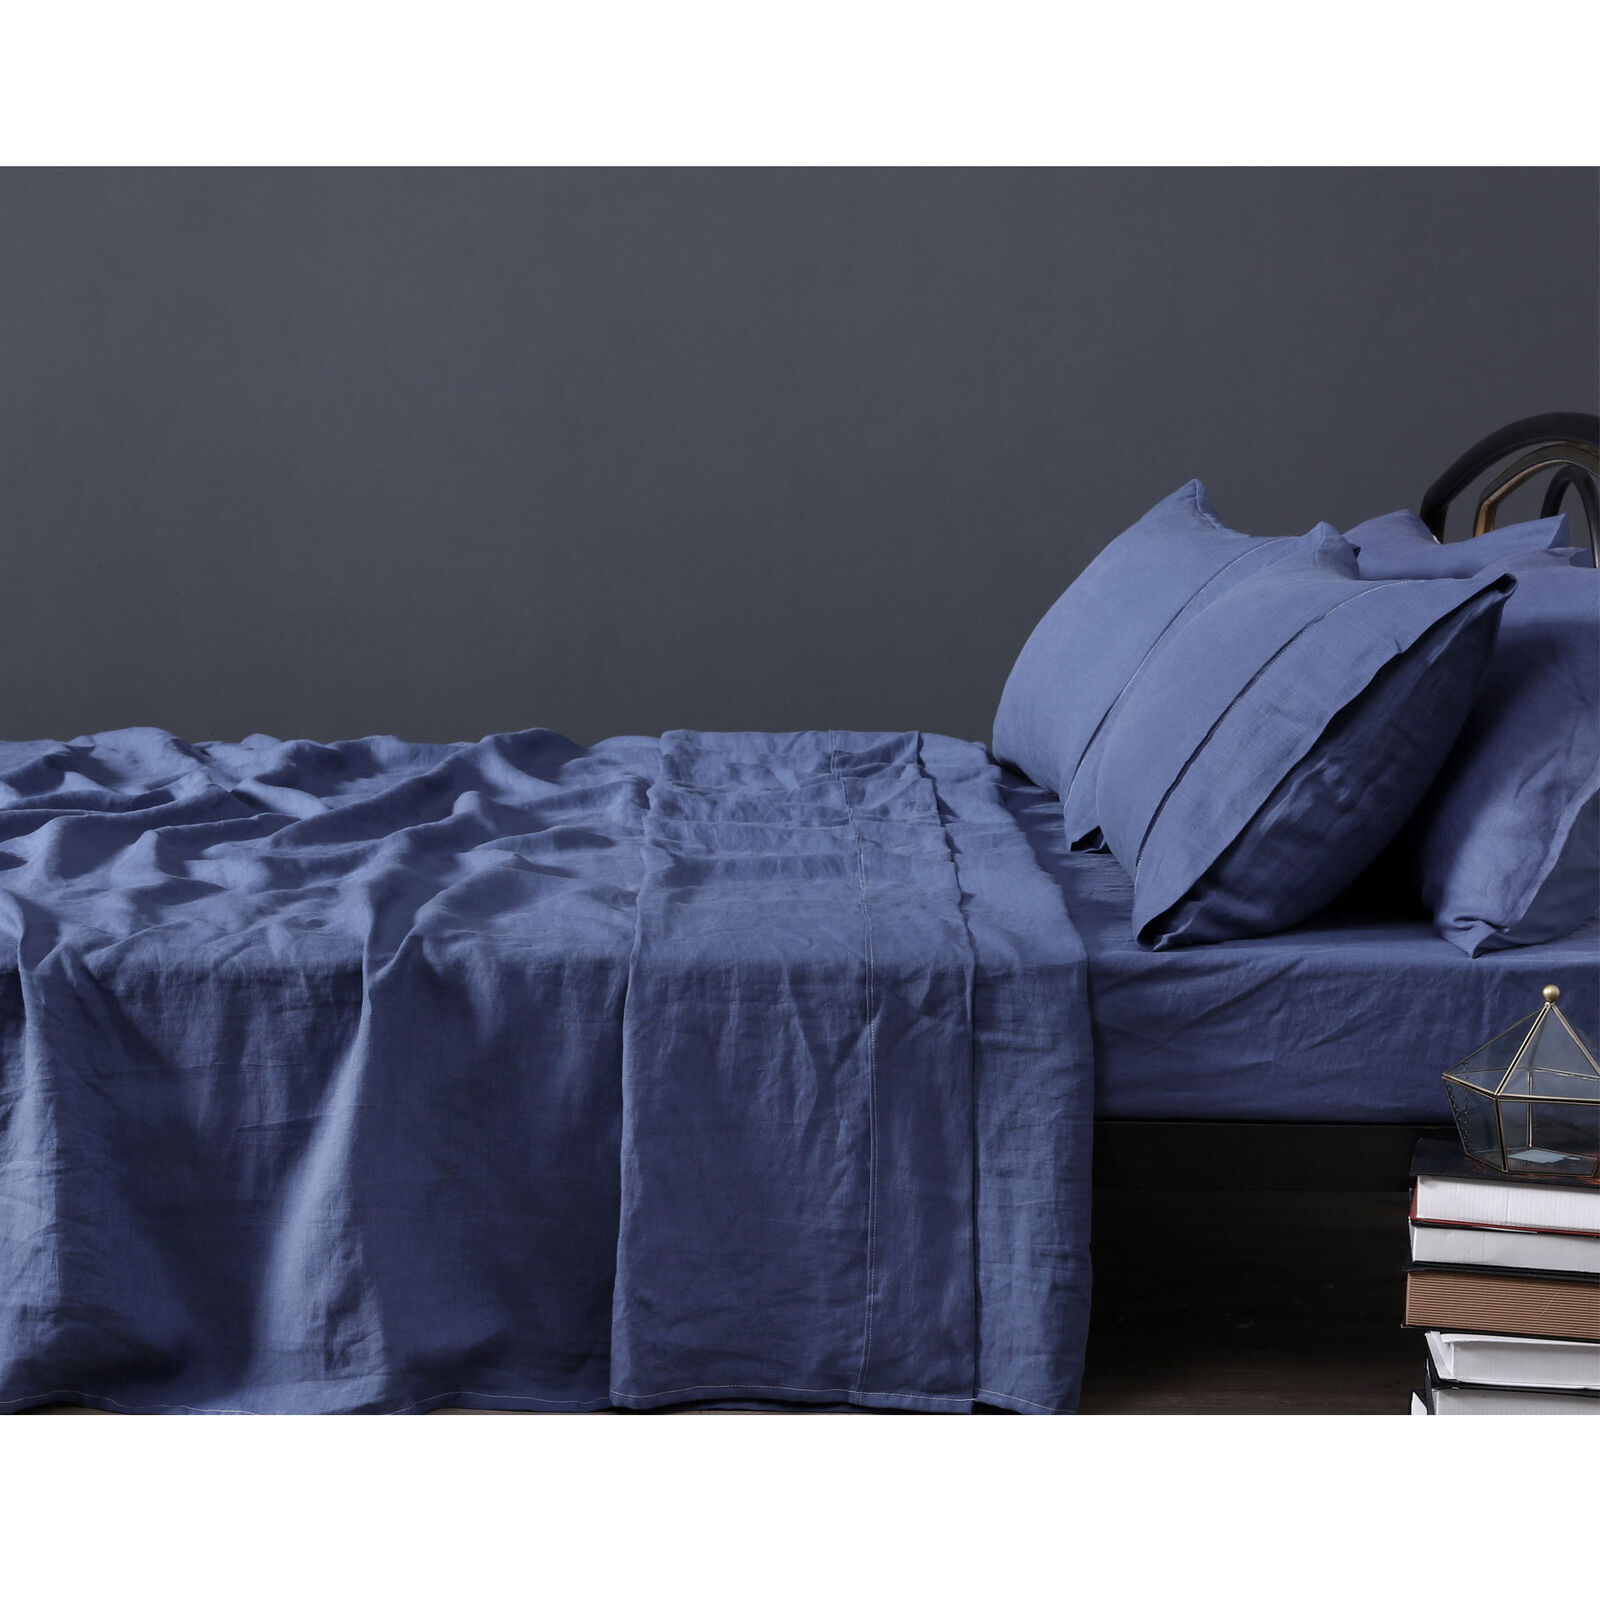 4 Pce 100% Pure Linen INDIGO Blau Sheet Set by Vintage Design Homewares - QUEEN